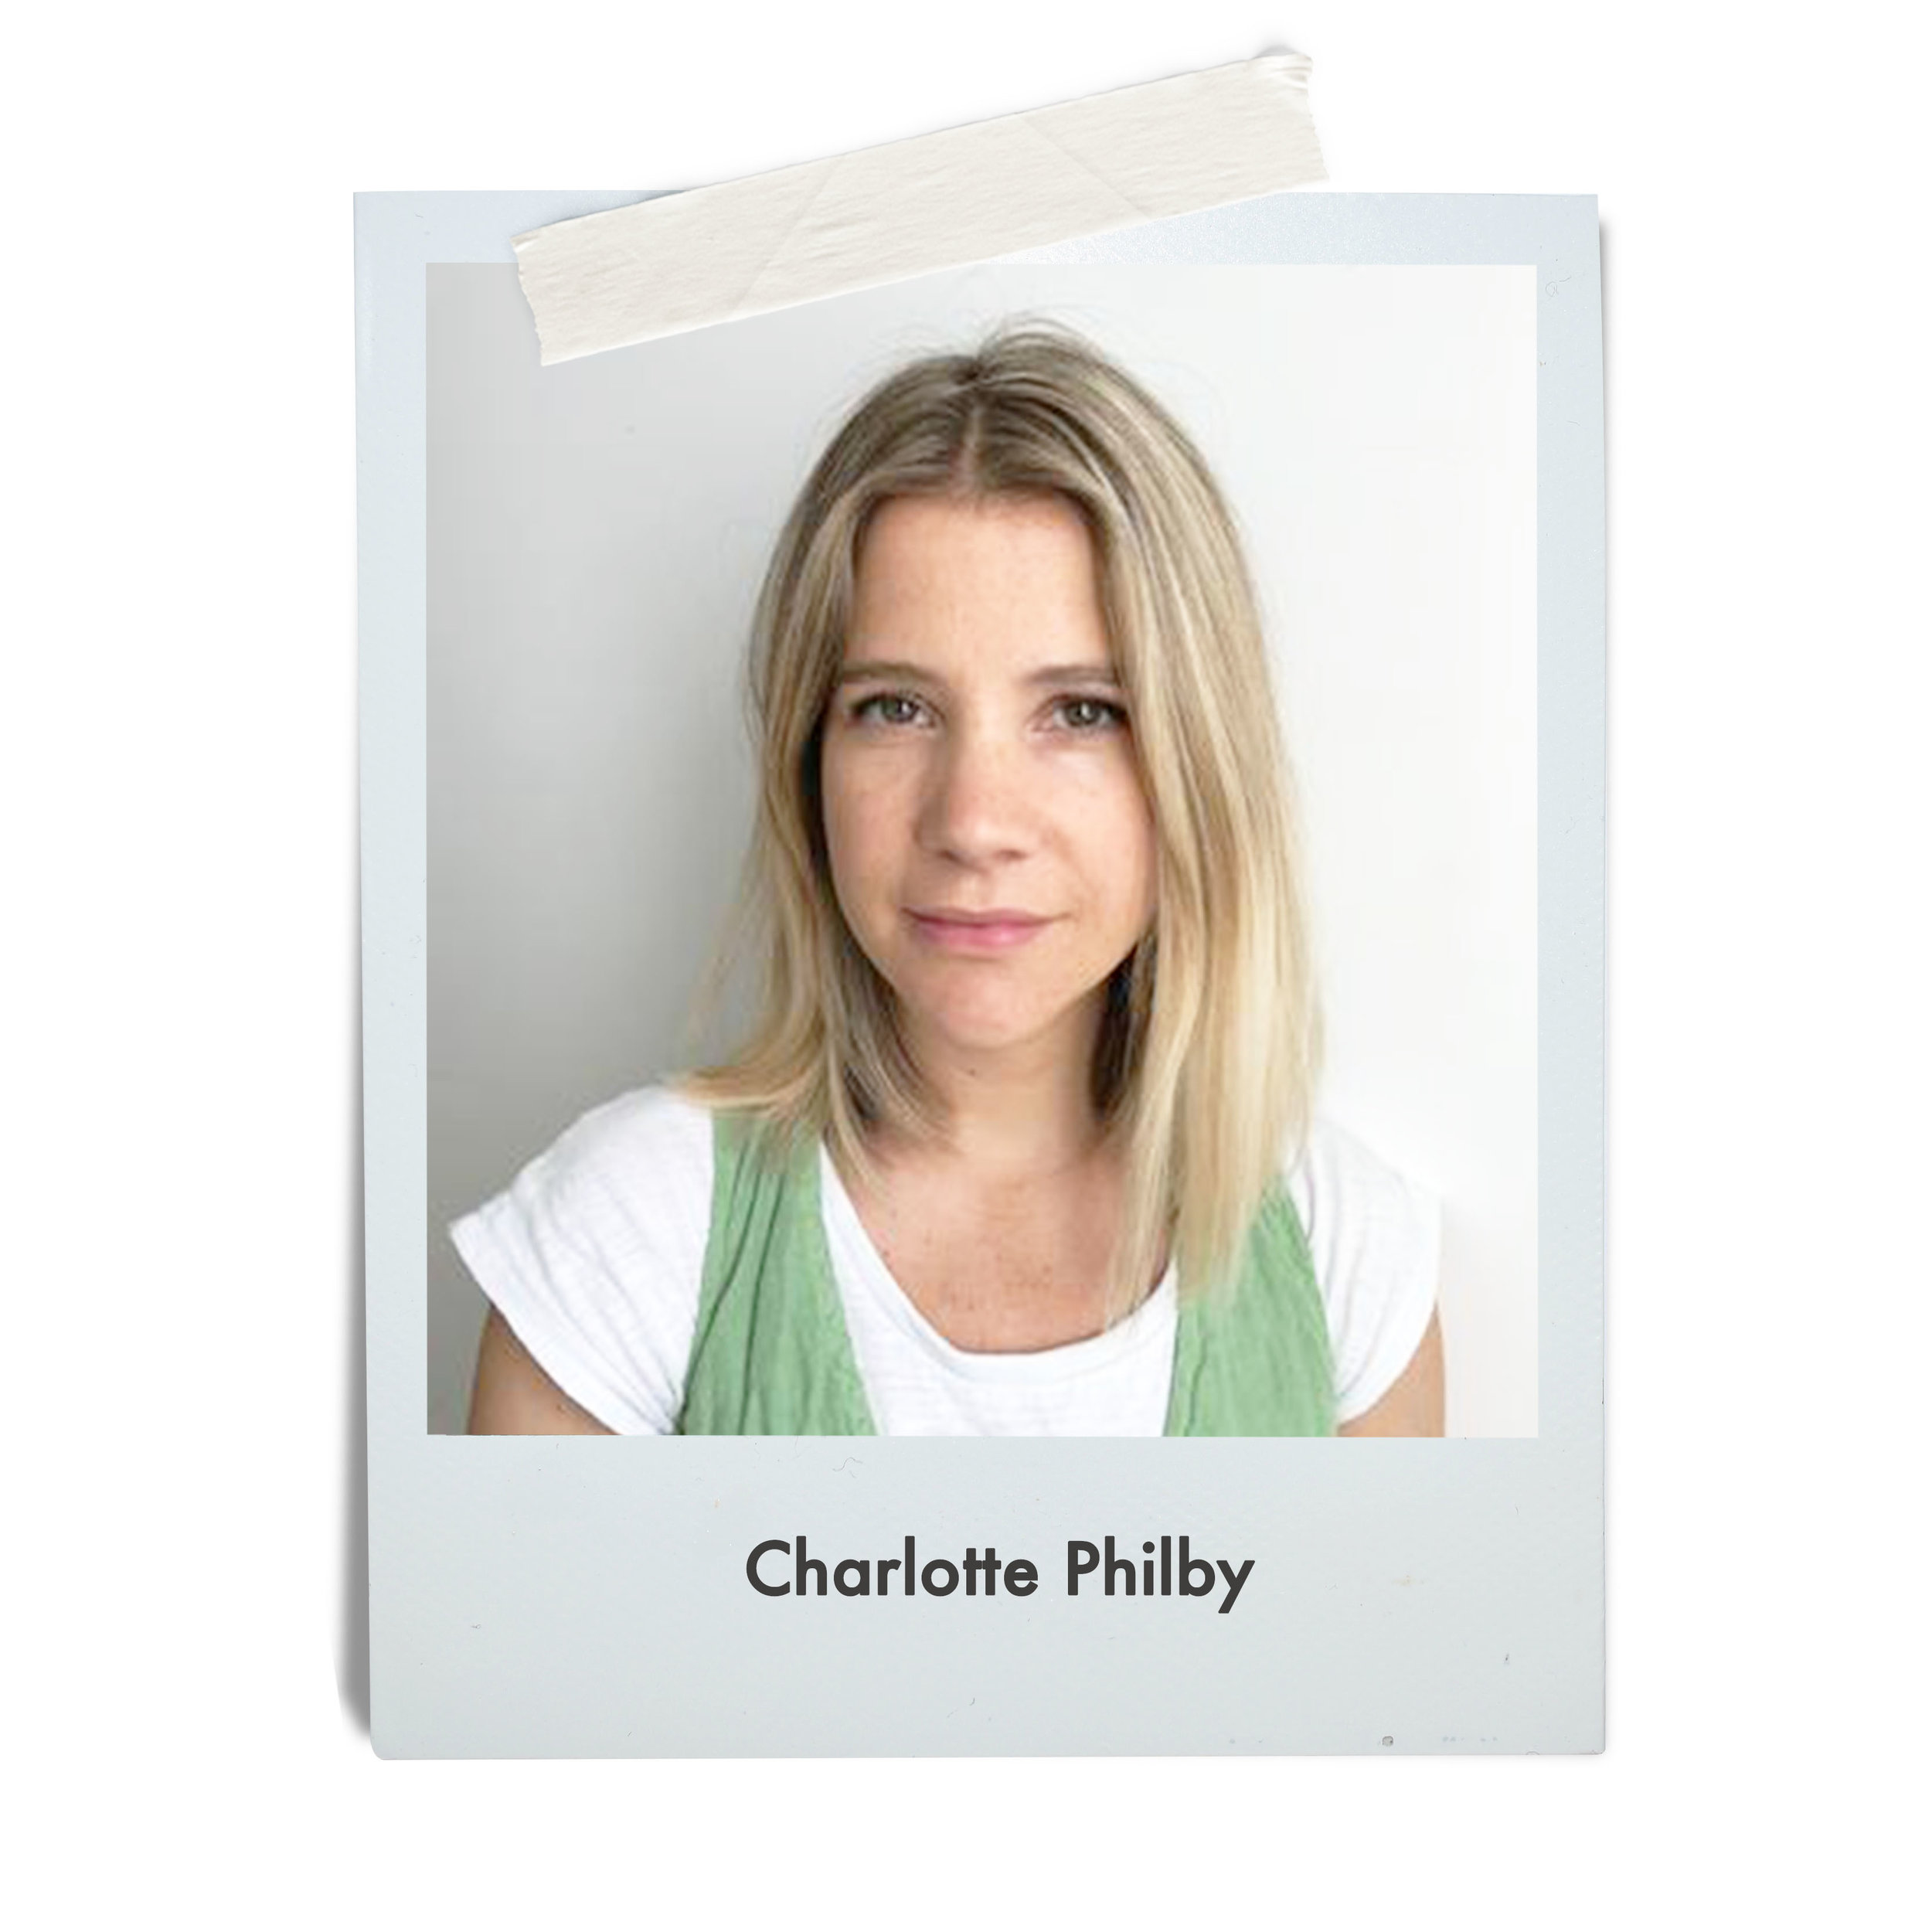 Charlotte Philby